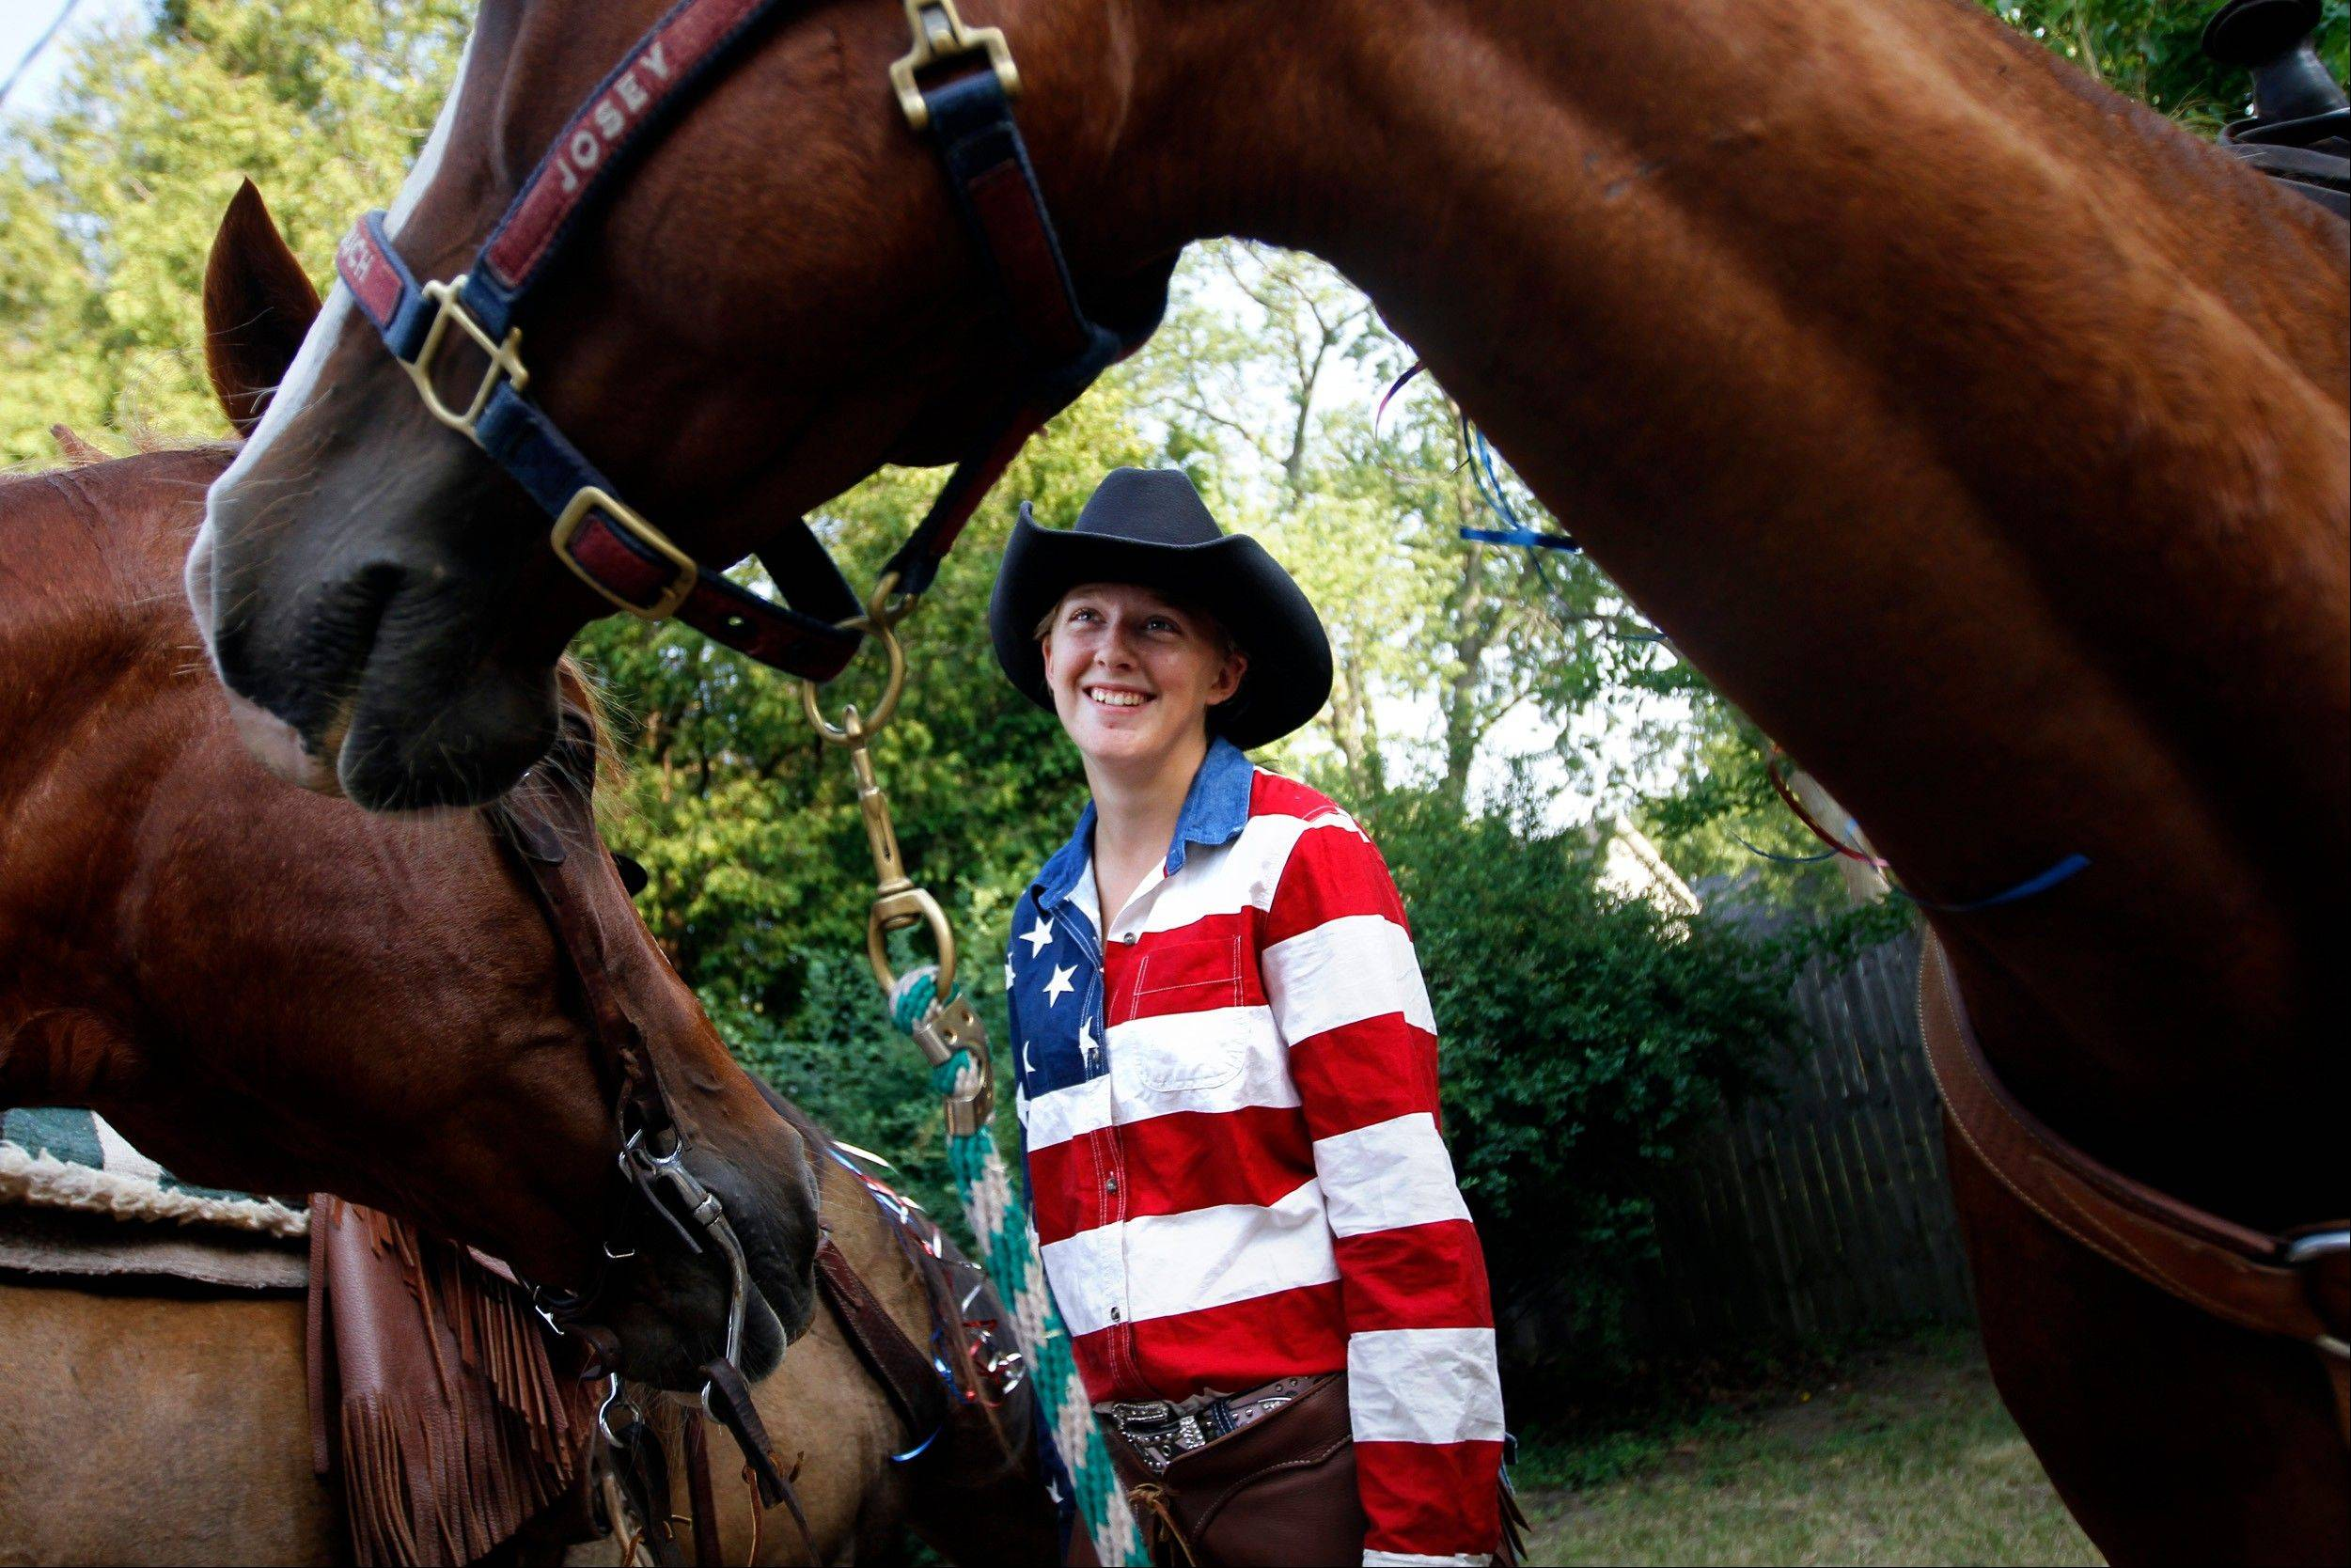 Kristen Willingham, 19, smiles at one of the horses from the Double JJ Ranch shortly before the beginning of the Fourth of July parade Wednesday, July 4, 2012 in Whitehall, Mich.